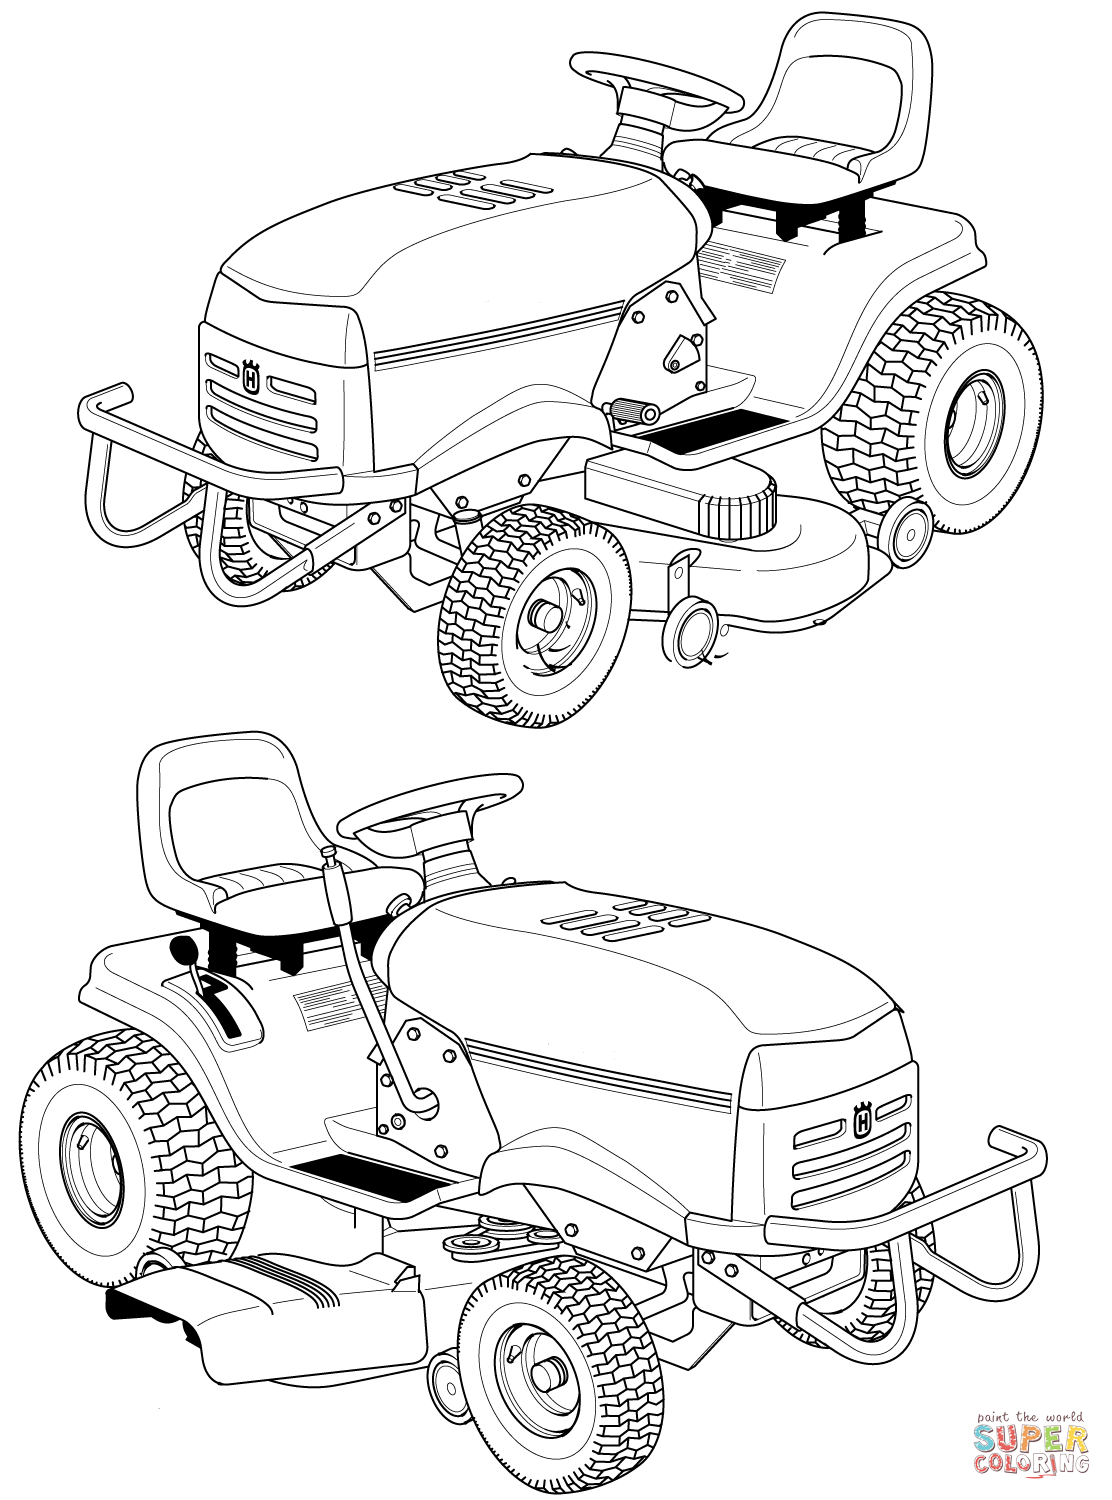 lawn mower coloring page riding lawn mower drawing at getdrawings free download lawn page mower coloring